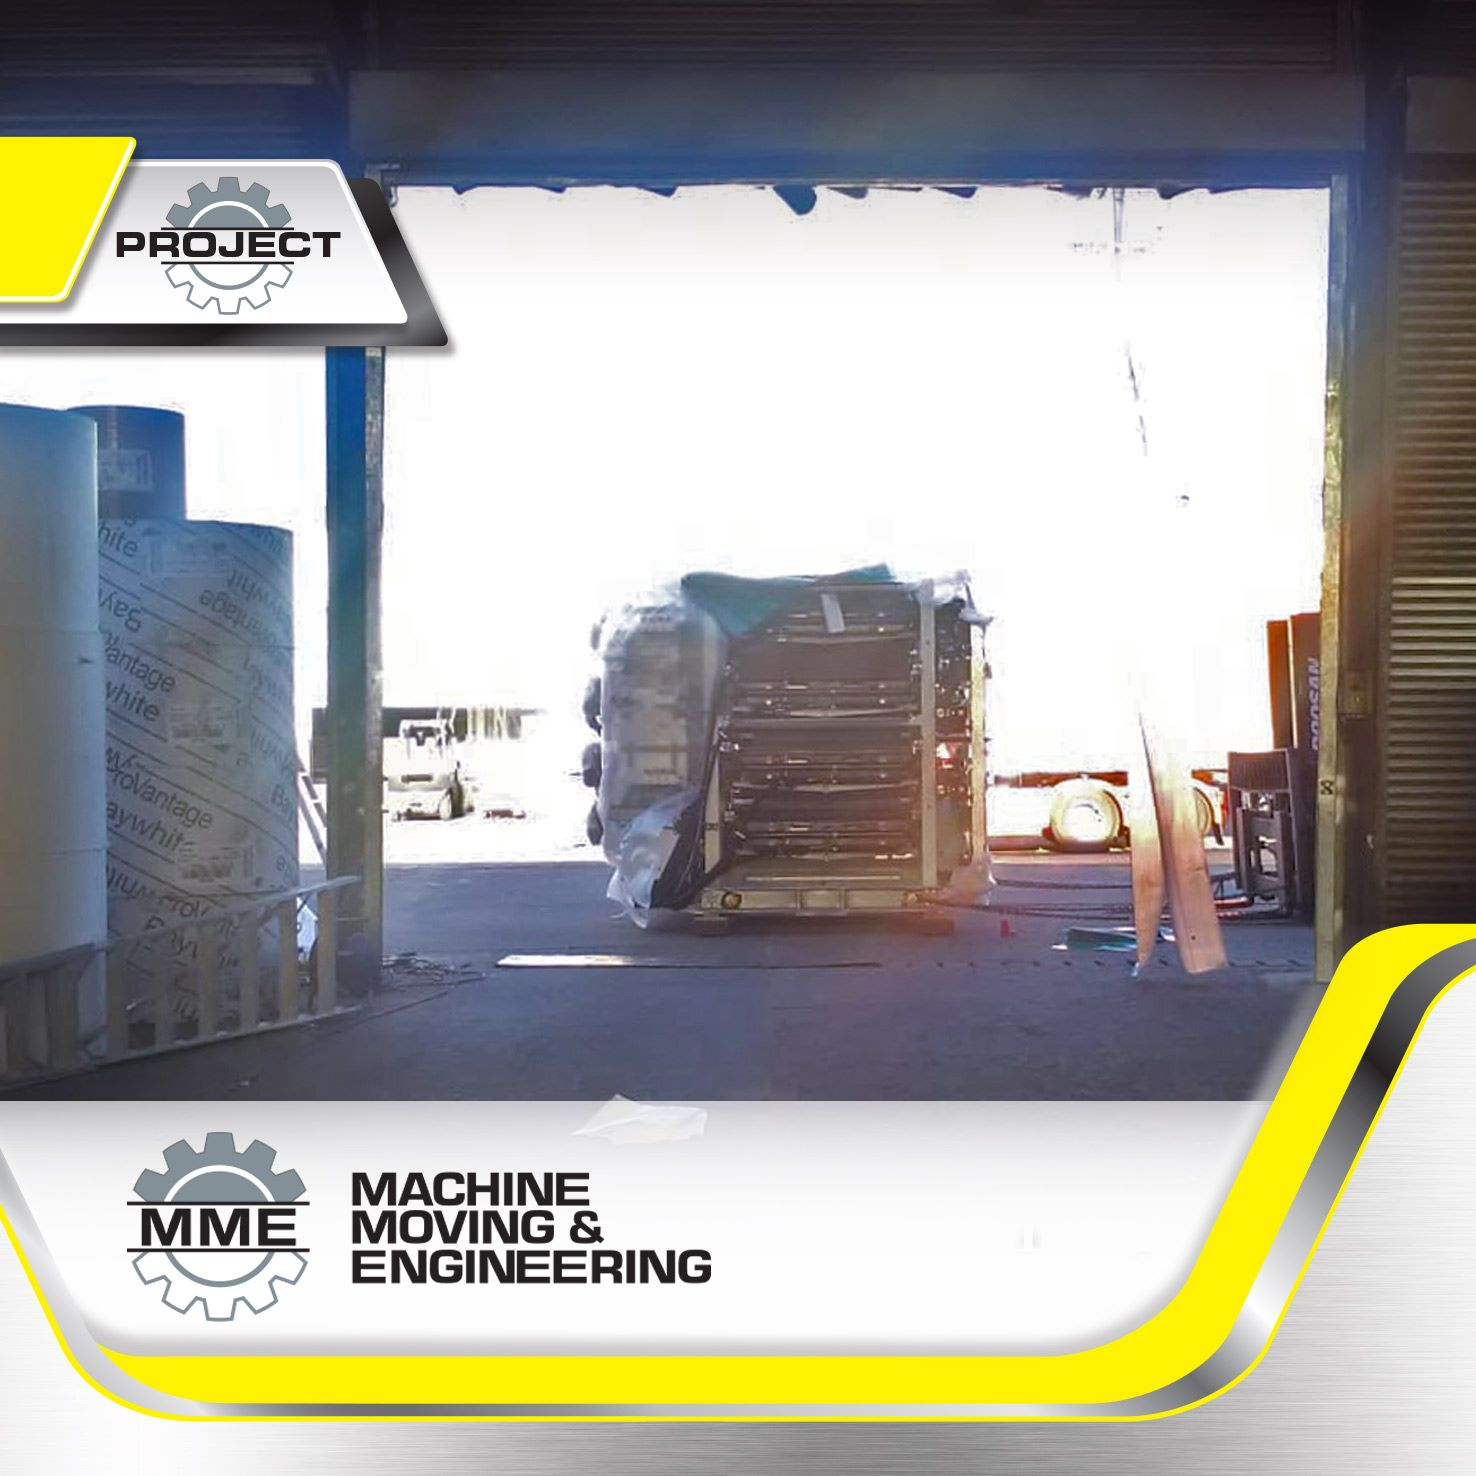 sack print line installation part-2-mme-projects-mme-machine-moving-engineering-machinery-equipment-gauteng-kwazulu-natal-south-africa-isithebe